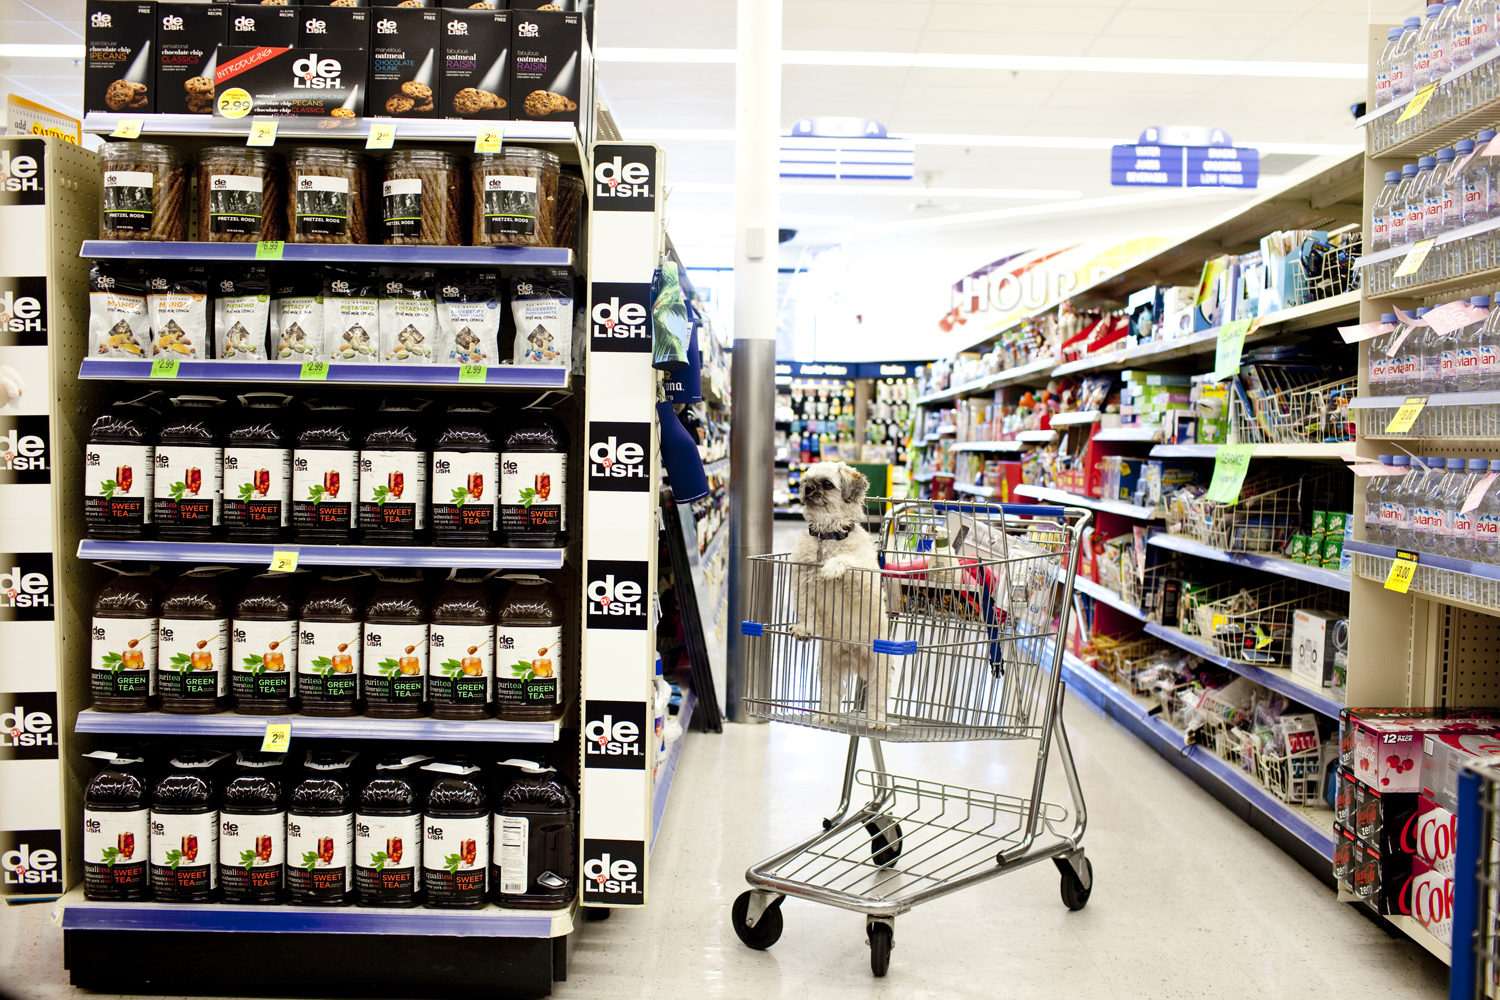 Theresa Gottardo shops in WalGreens with her dog Snoopy in Sun City, Arizona August 24, 2010.